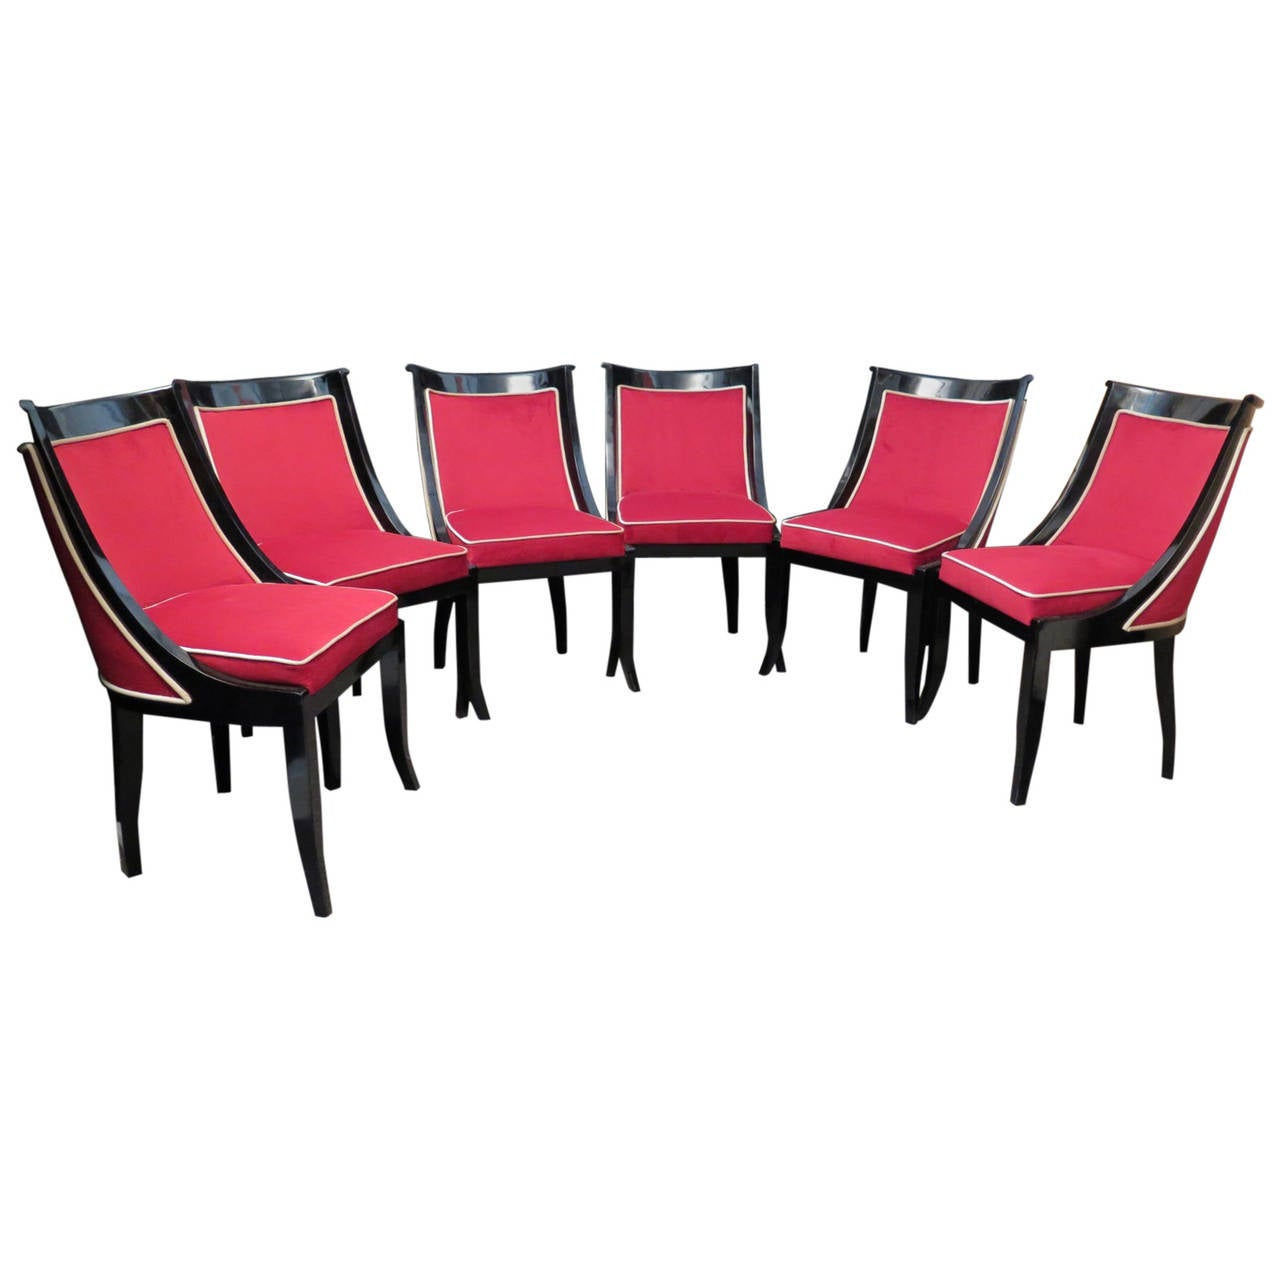 1940s Six Black and Red Velvet French Art Deco Chairs